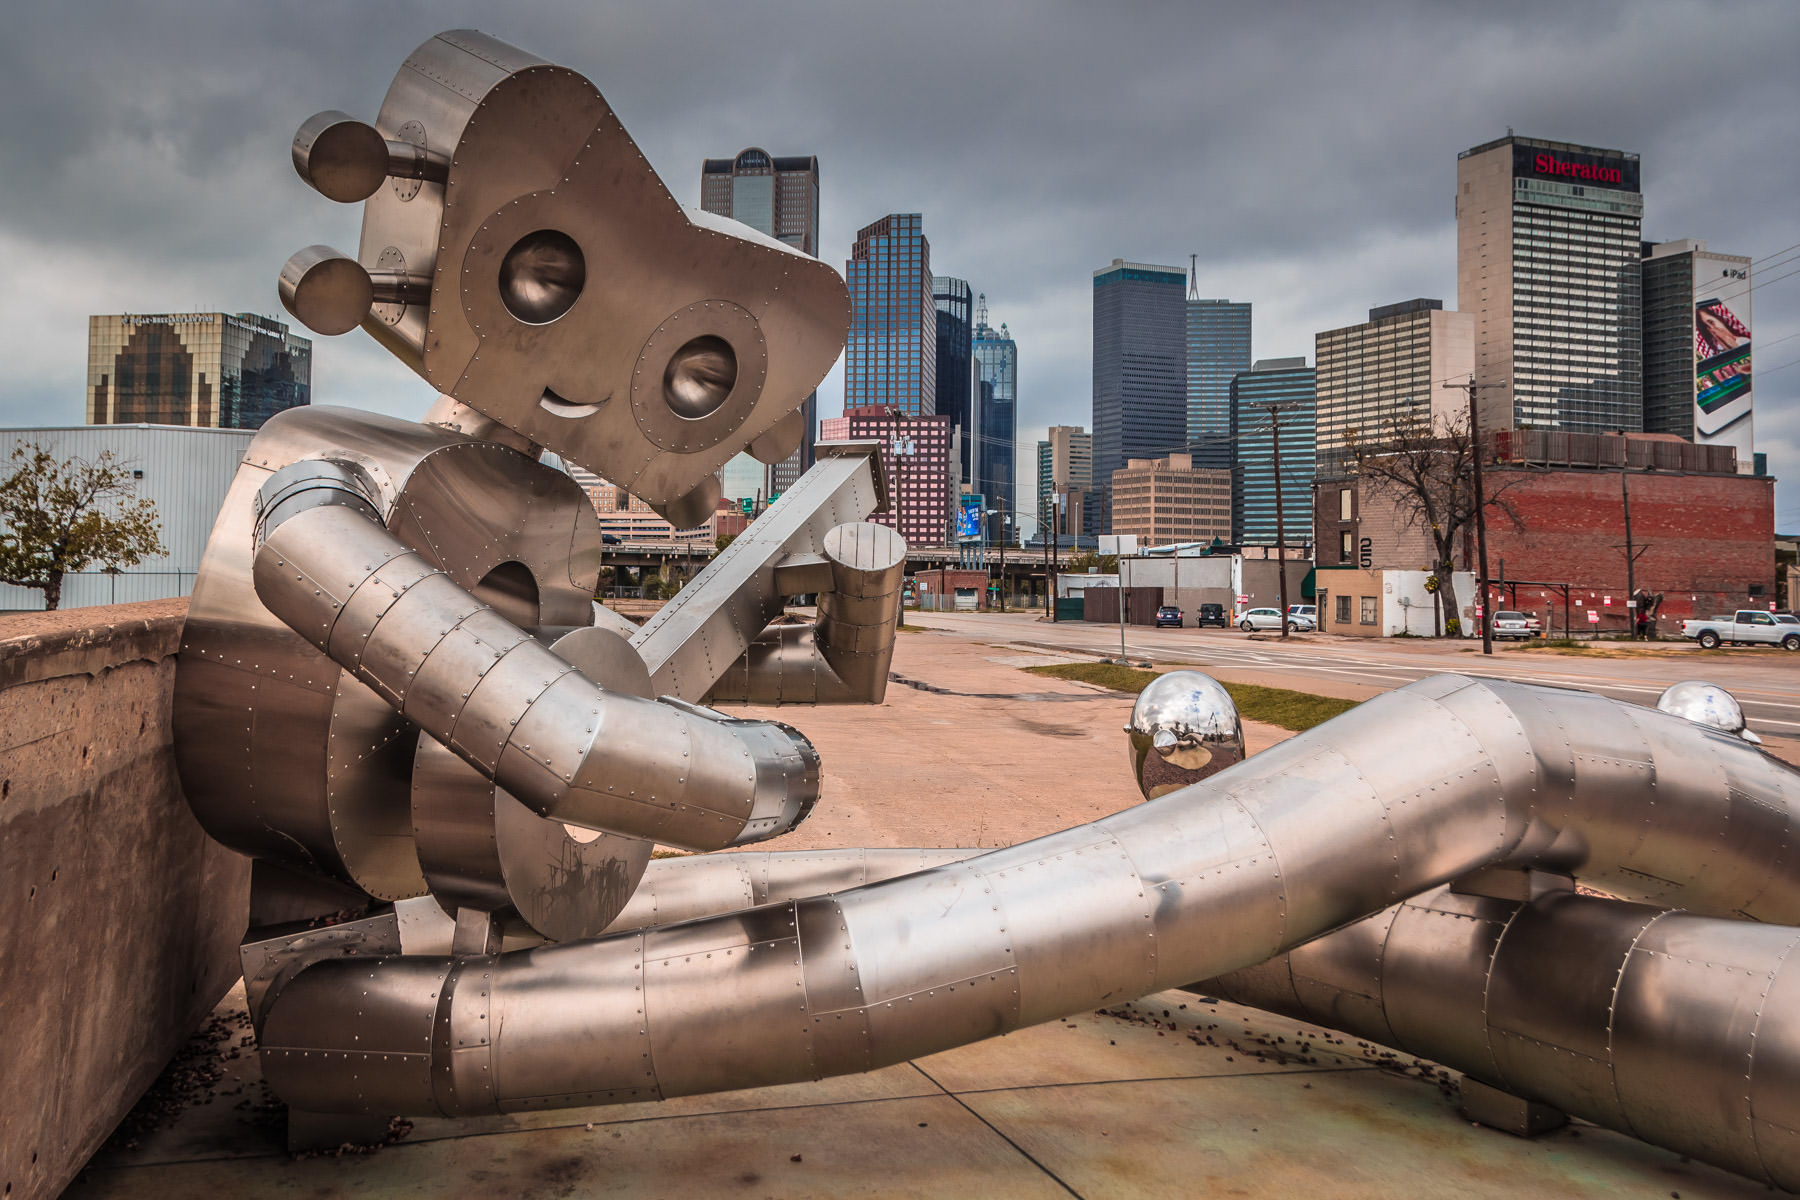 Dallas' Traveling Man sculpture—a landmark in the Deep Ellum neighborhood—against the city's downtown skyline.